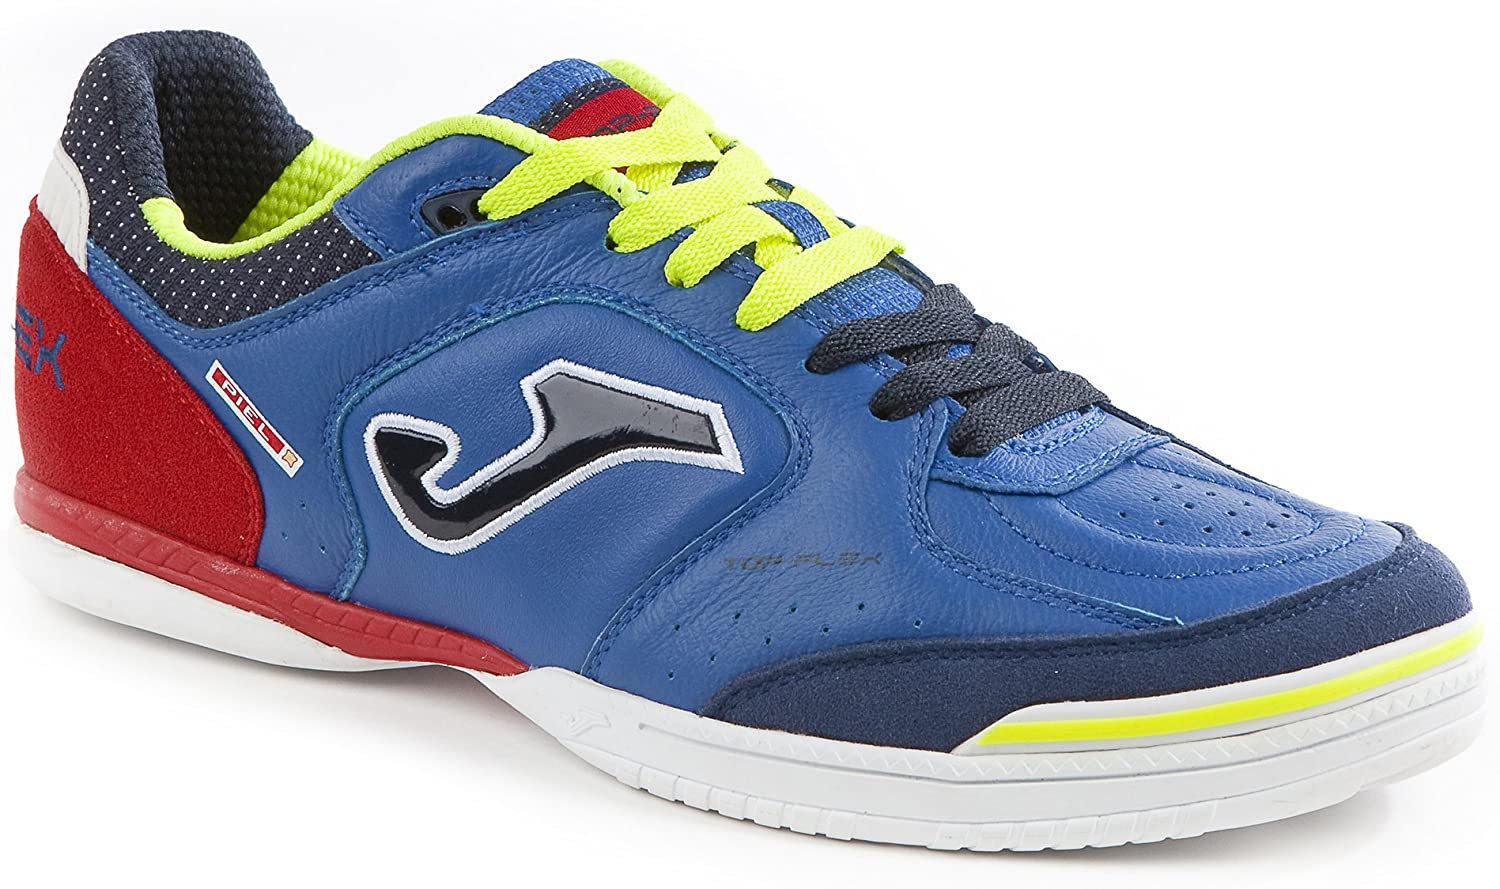 Joma Men's Futsal shoes bluee bluee White Red